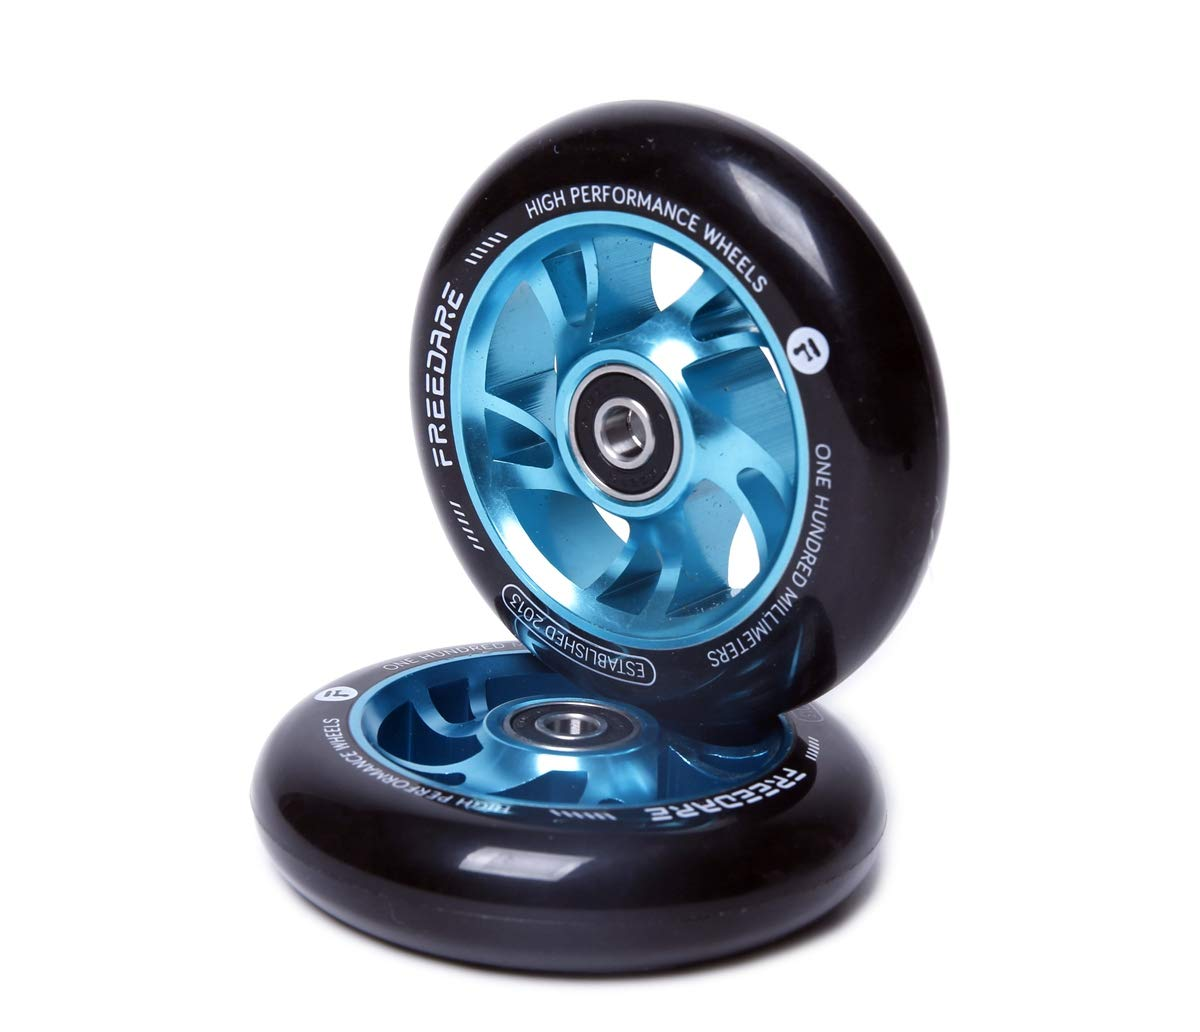 FREEDARE Scooter Wheels 100mm Pro Stunt Scooter Replacement Wheels with ABEC Bearings(Blue, Set of 2) by FREEDARE